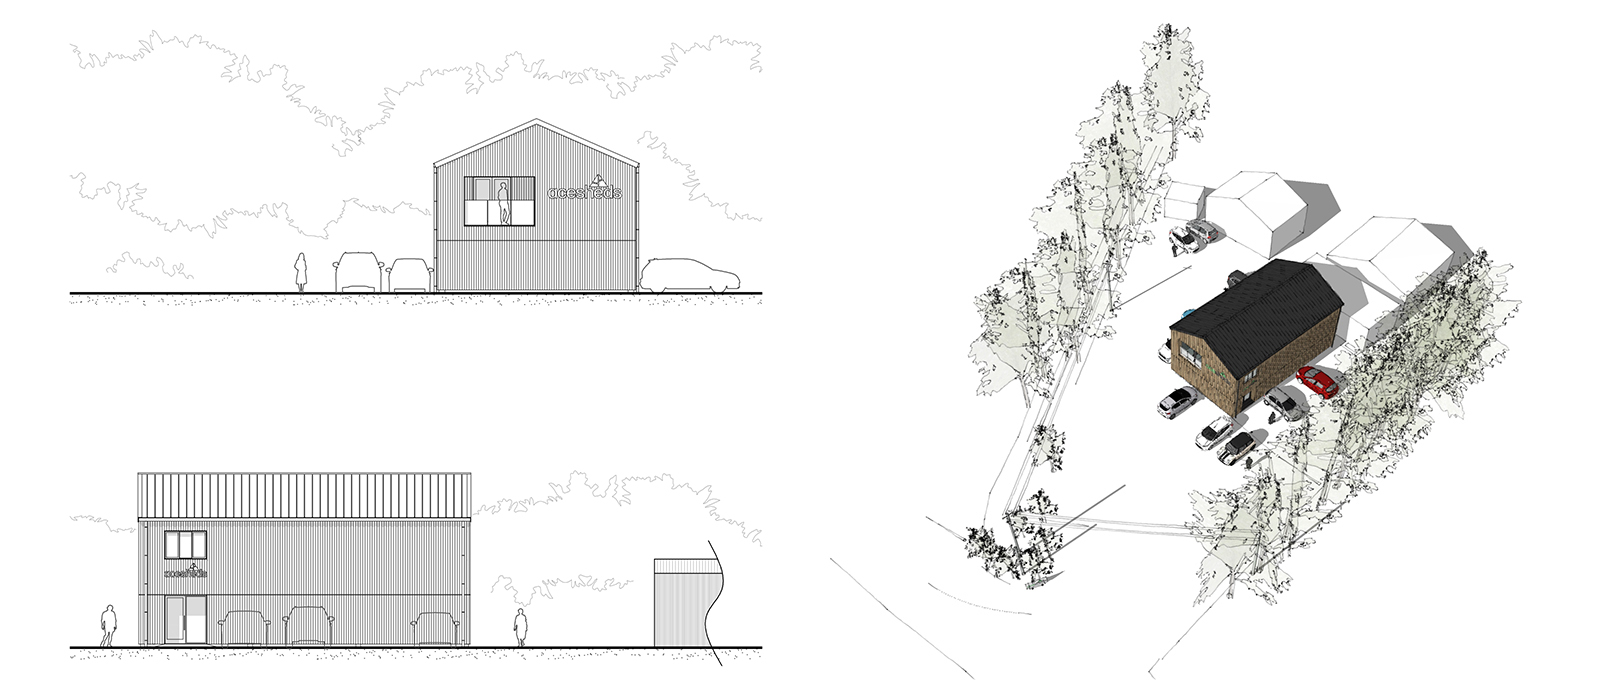 gyd architecture | barn conversion, office, site, elevations